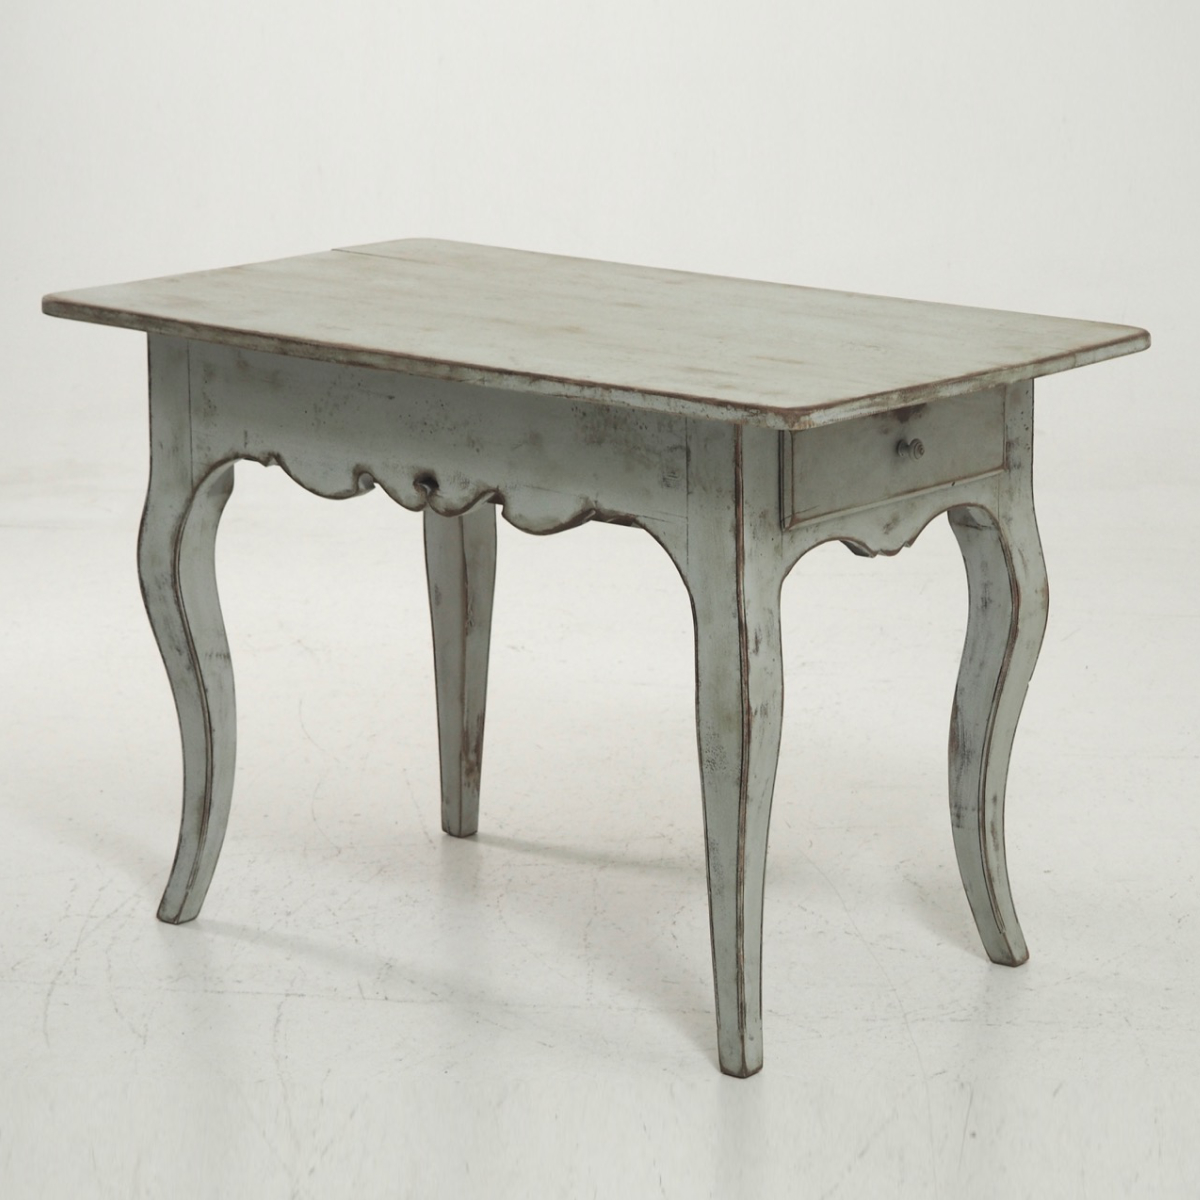 Freestending Rococo style table, 19th C. - € 1.900